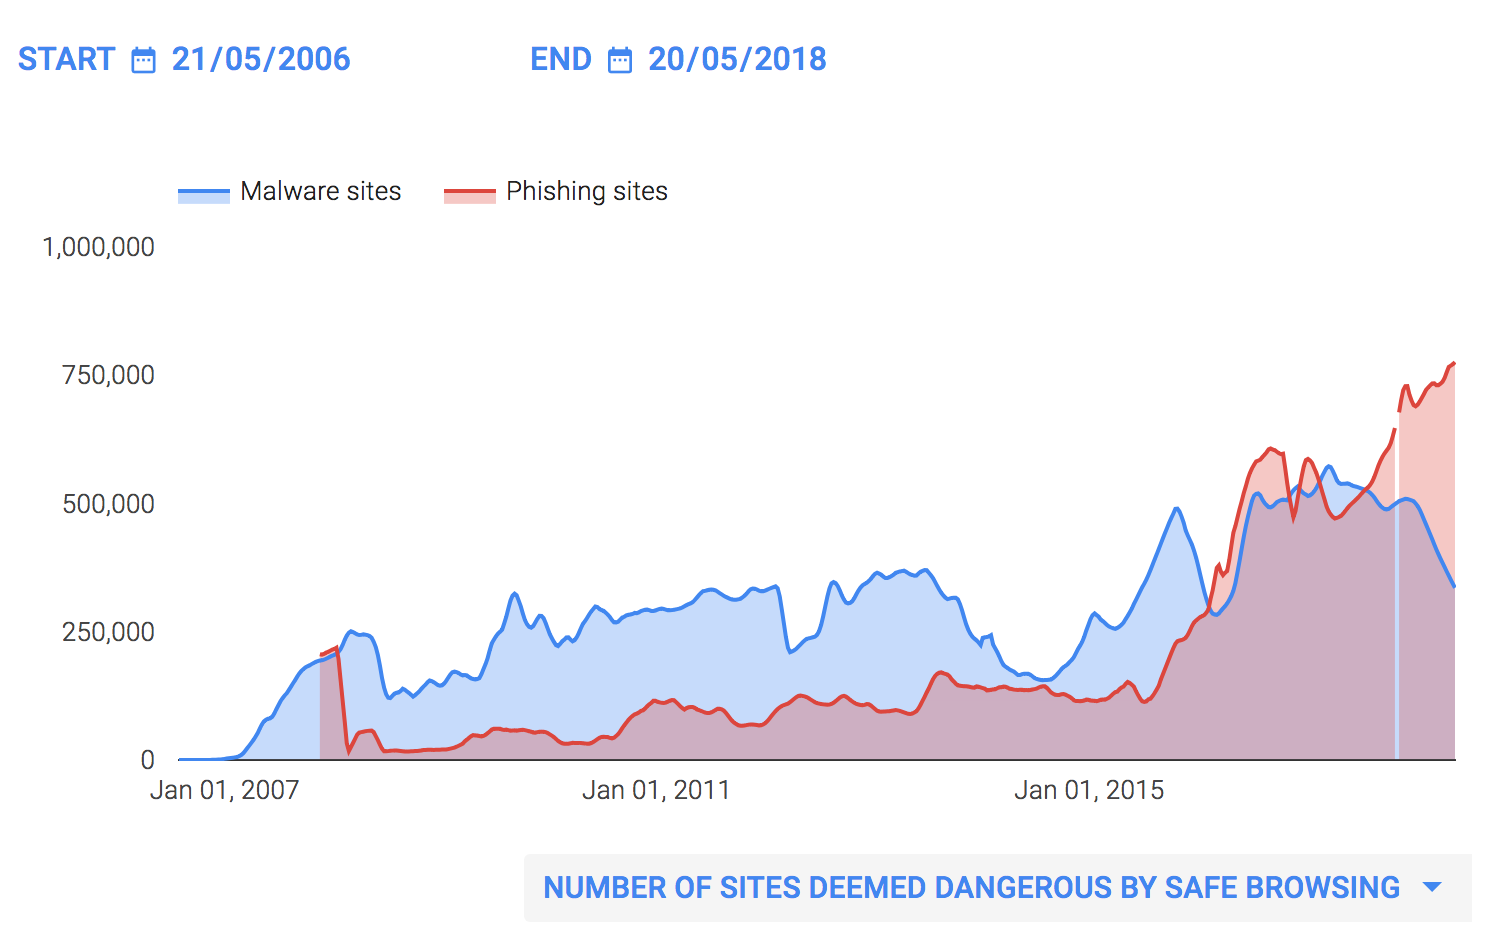 Google reports that the number of phishing websites has skyrocketed over the past decade